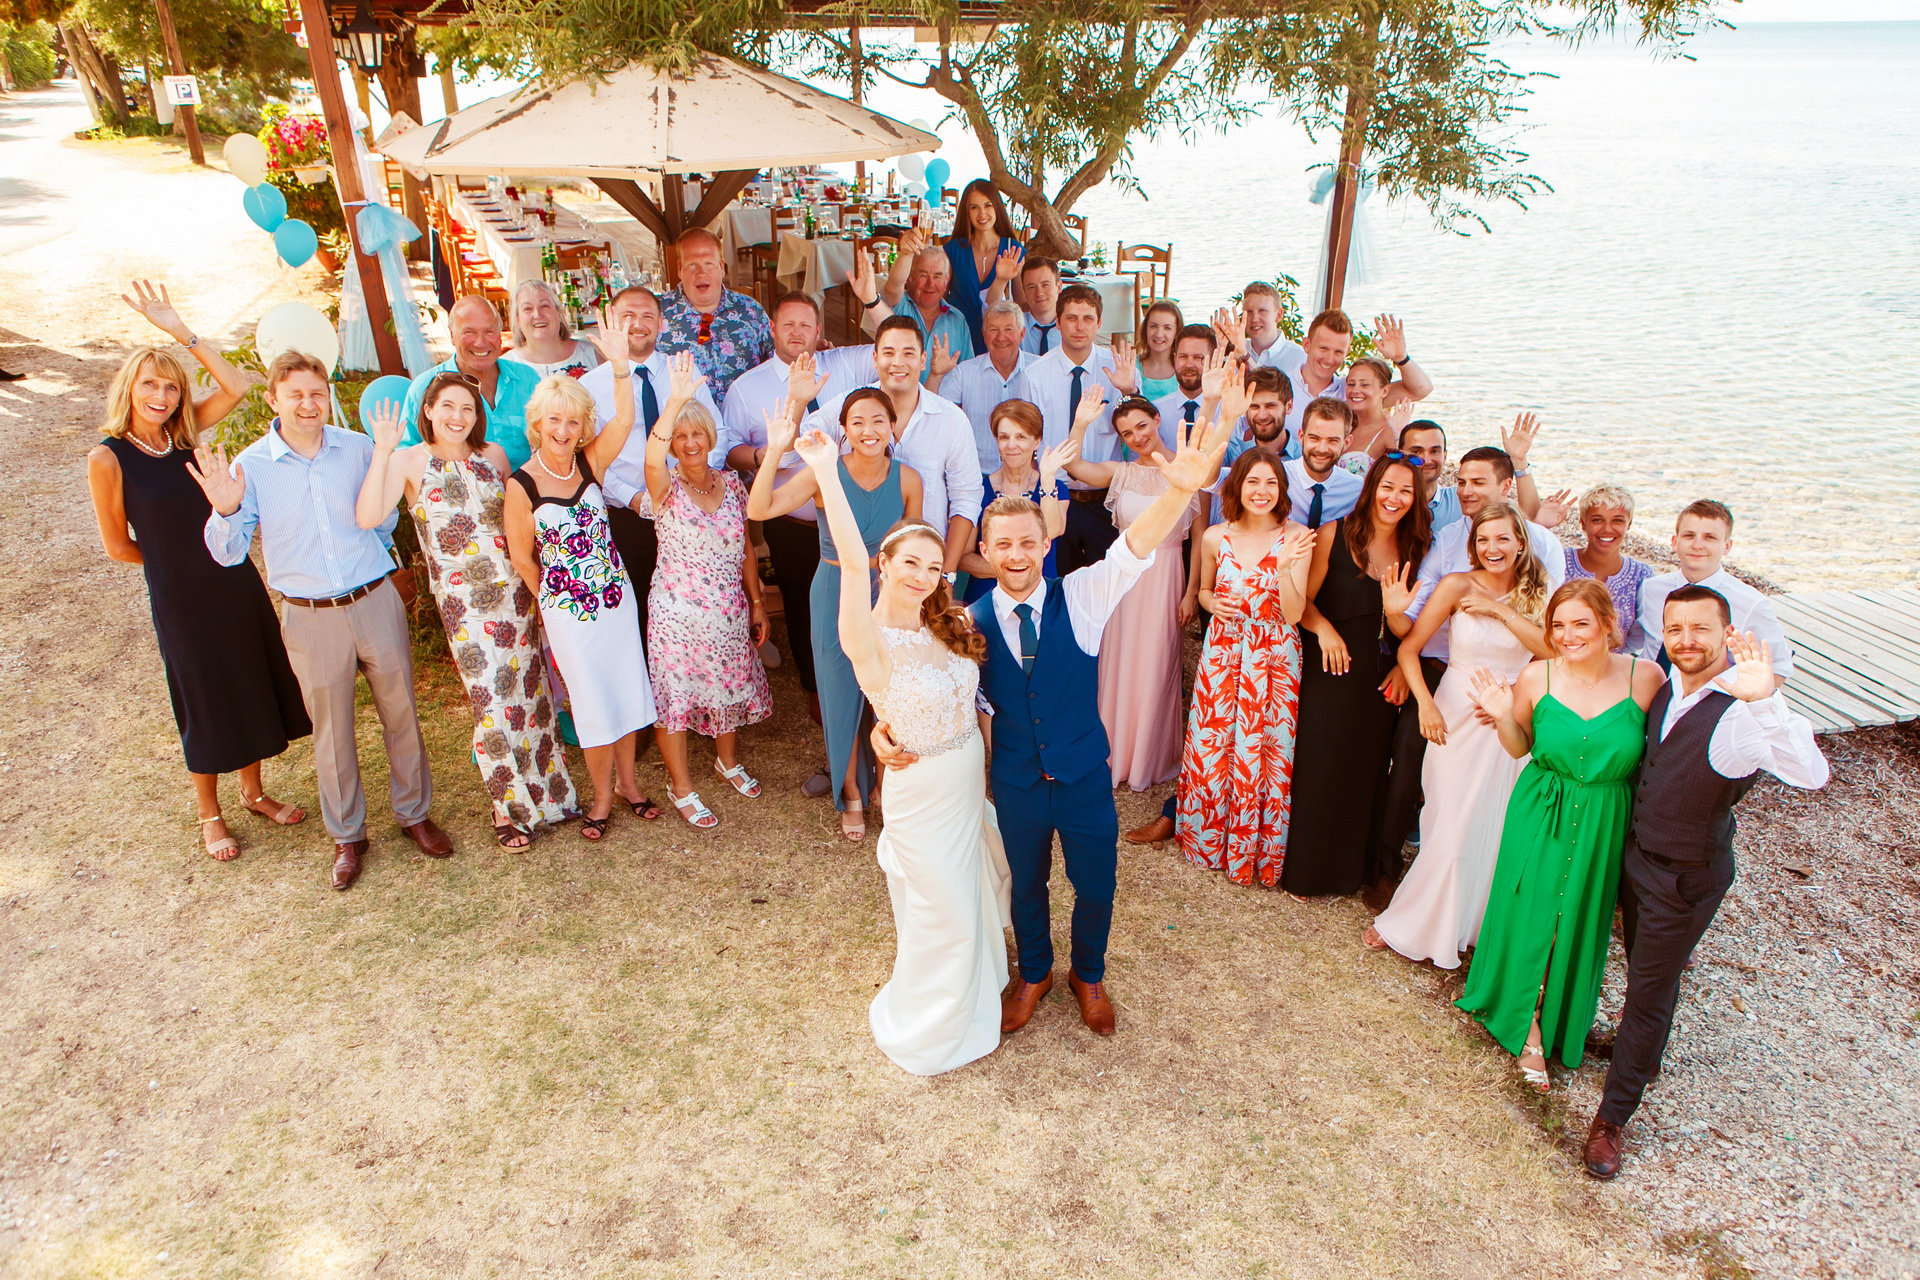 Greece Beach Elopement Portrait | The entire party joins the jubilant bride and groom